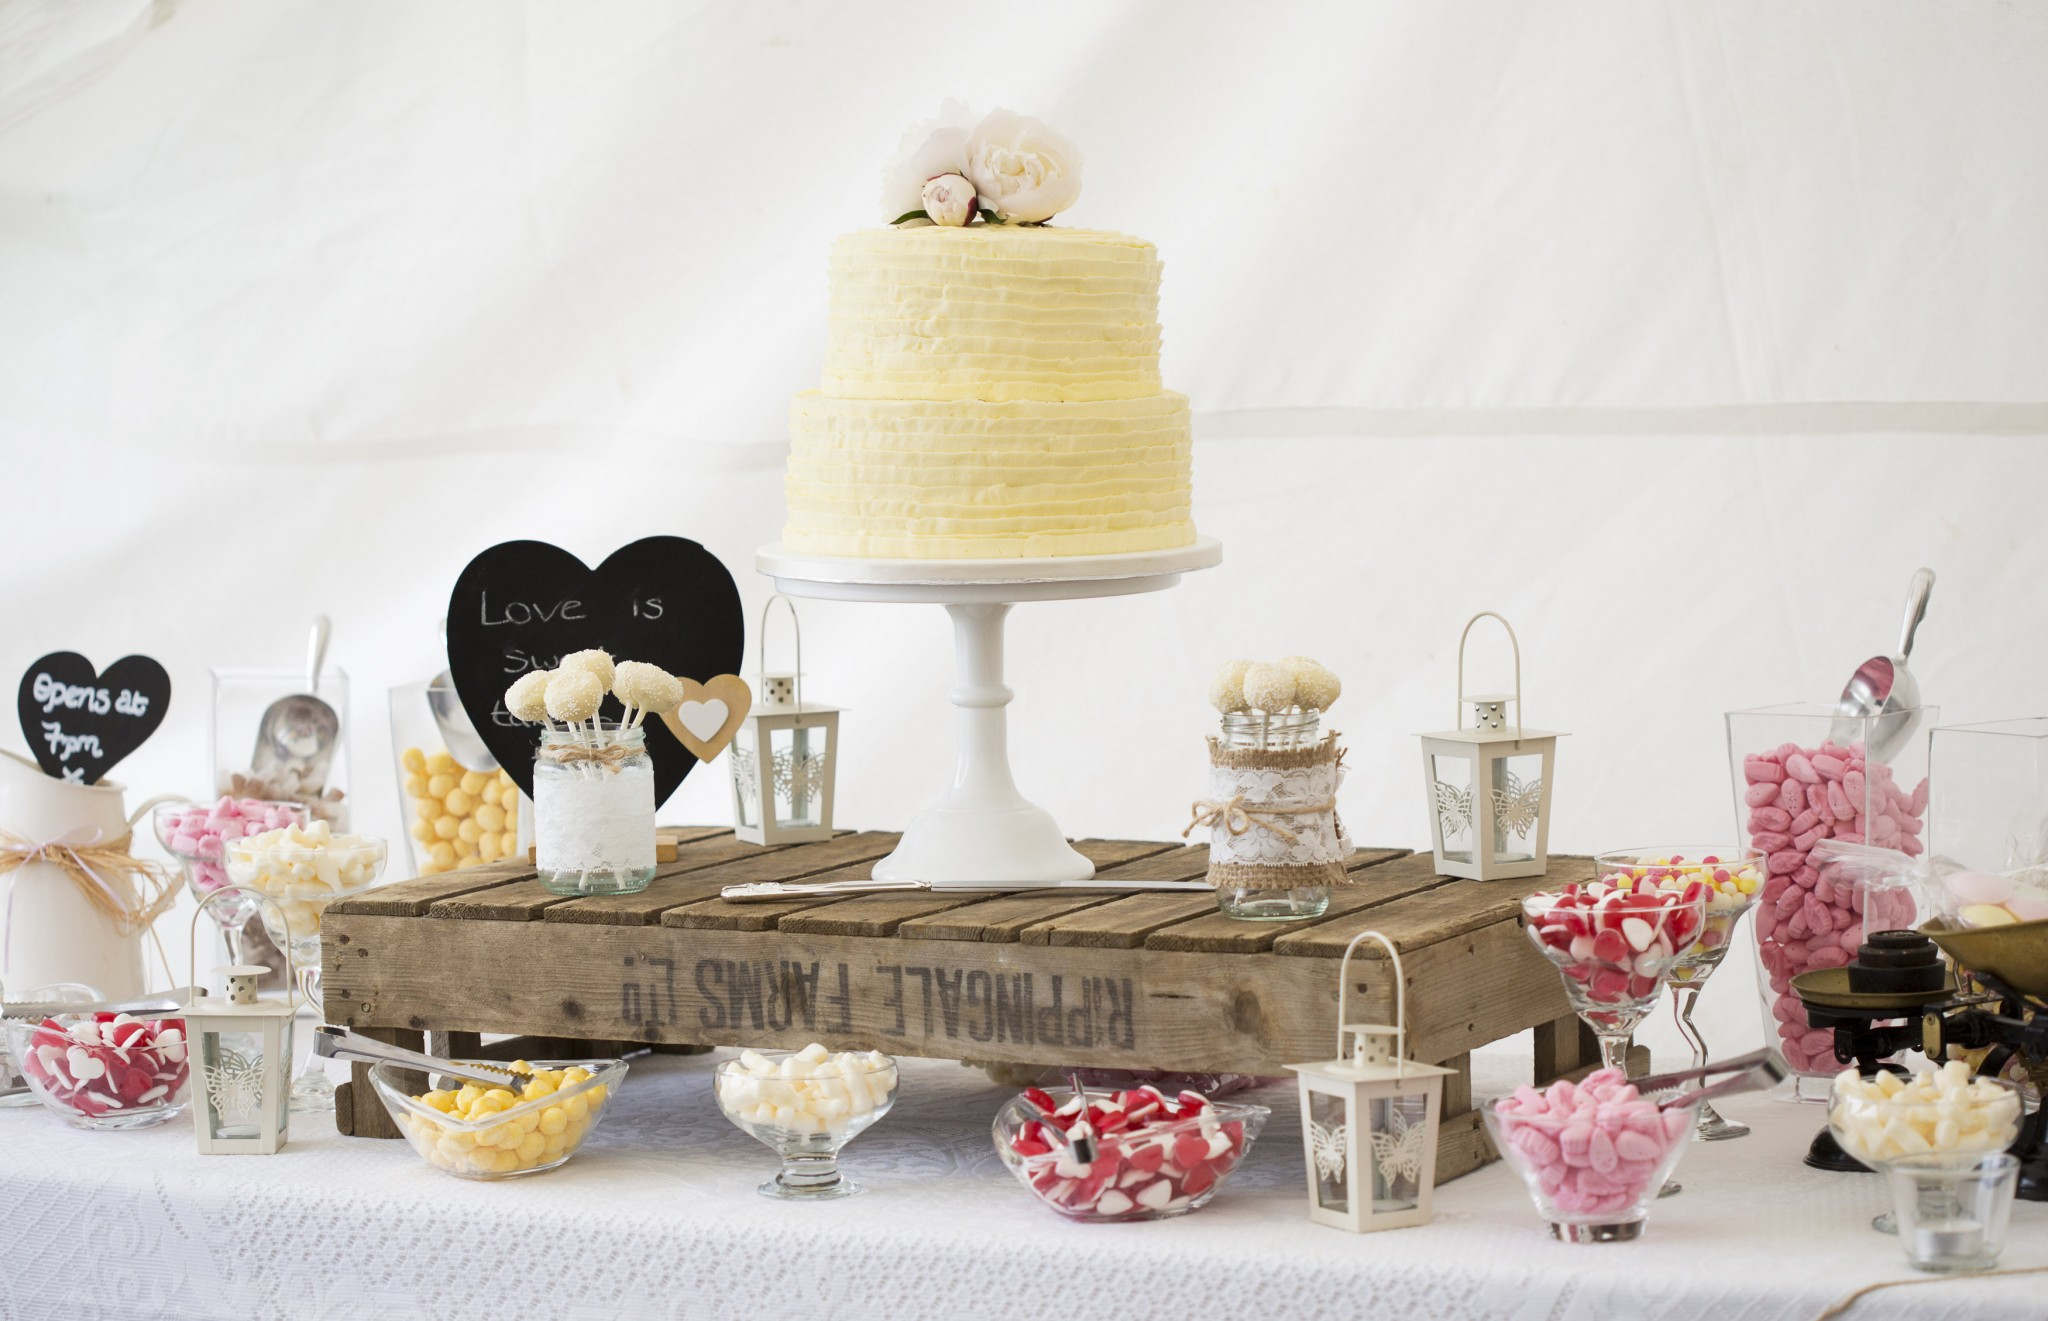 Nic's Slice of Heaven two tier buttercream wedding cake and sweet table, Duncton Mill Fishery, West Sussex